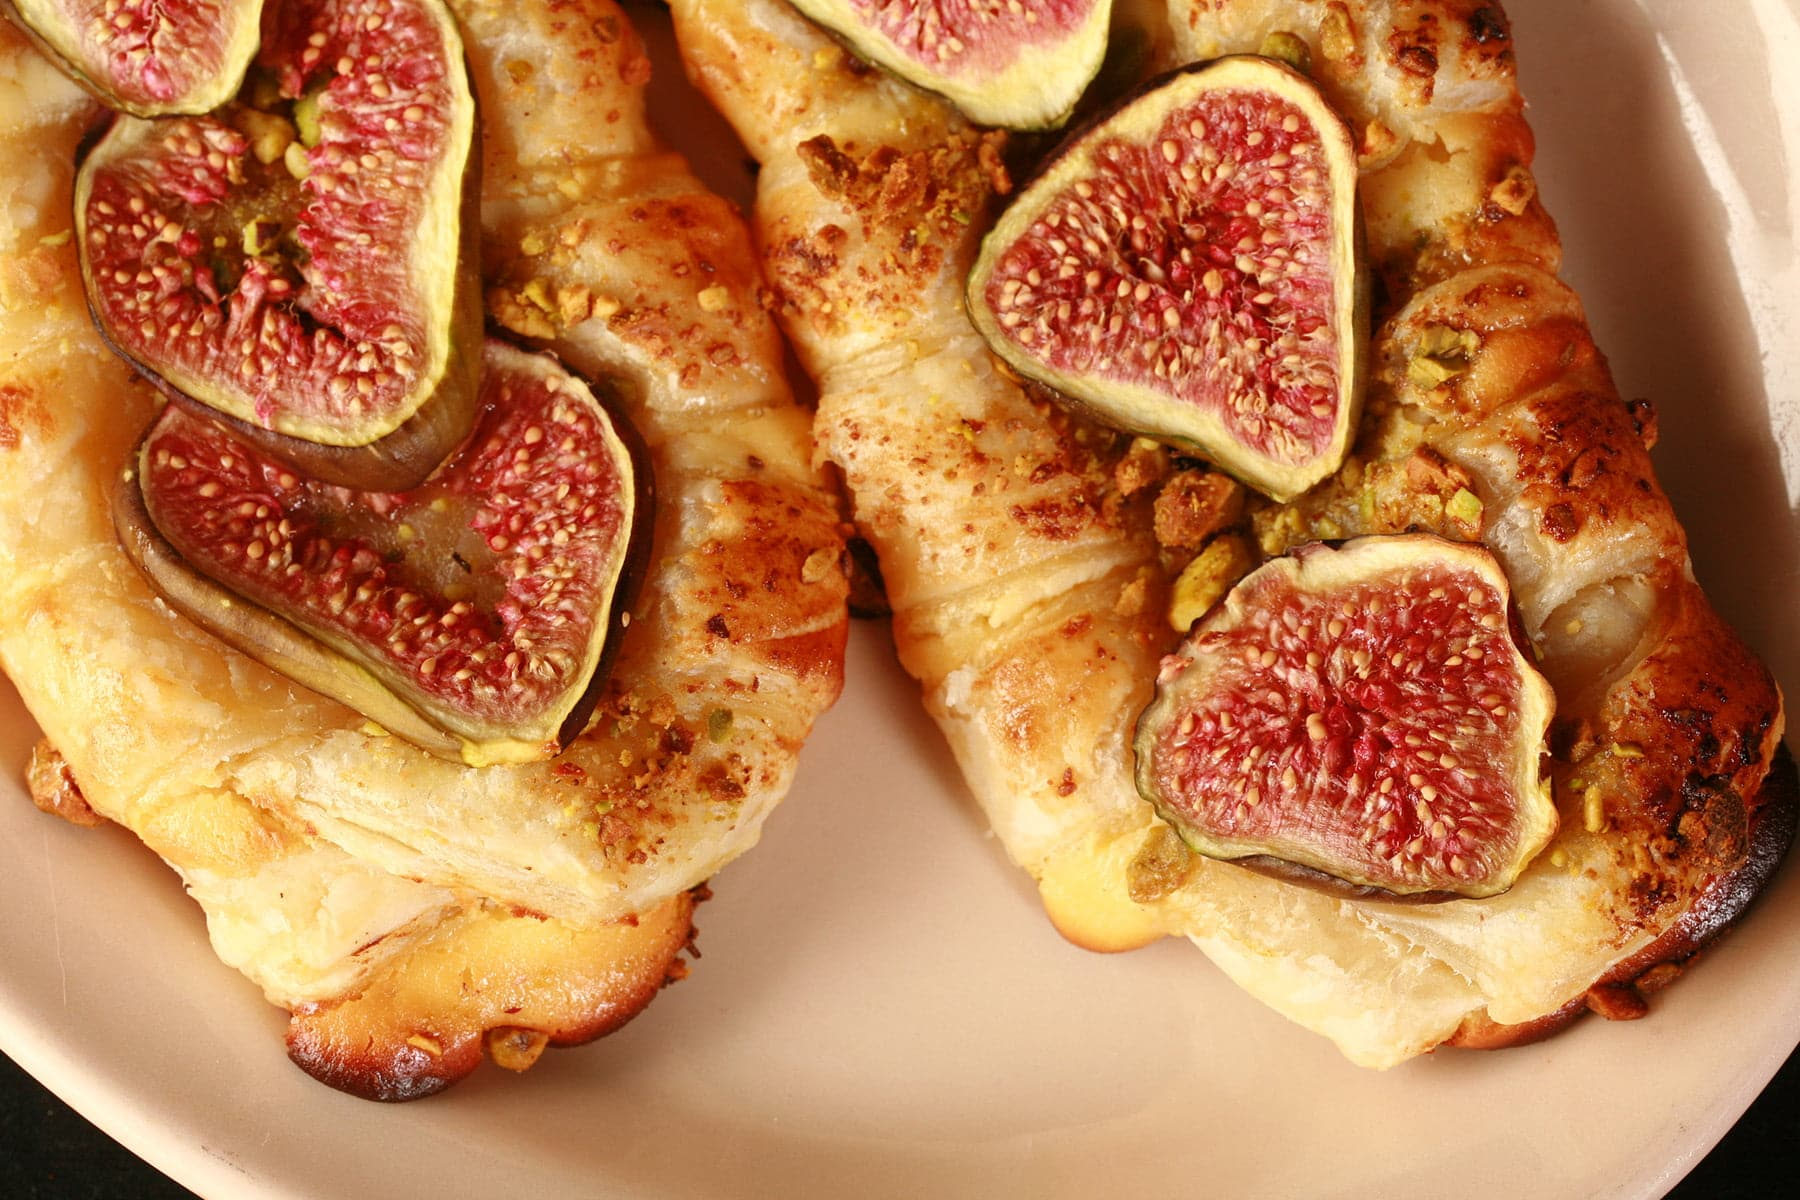 A close up view of two fig, honey, and goat cheese strudels on a tan coloured plate.